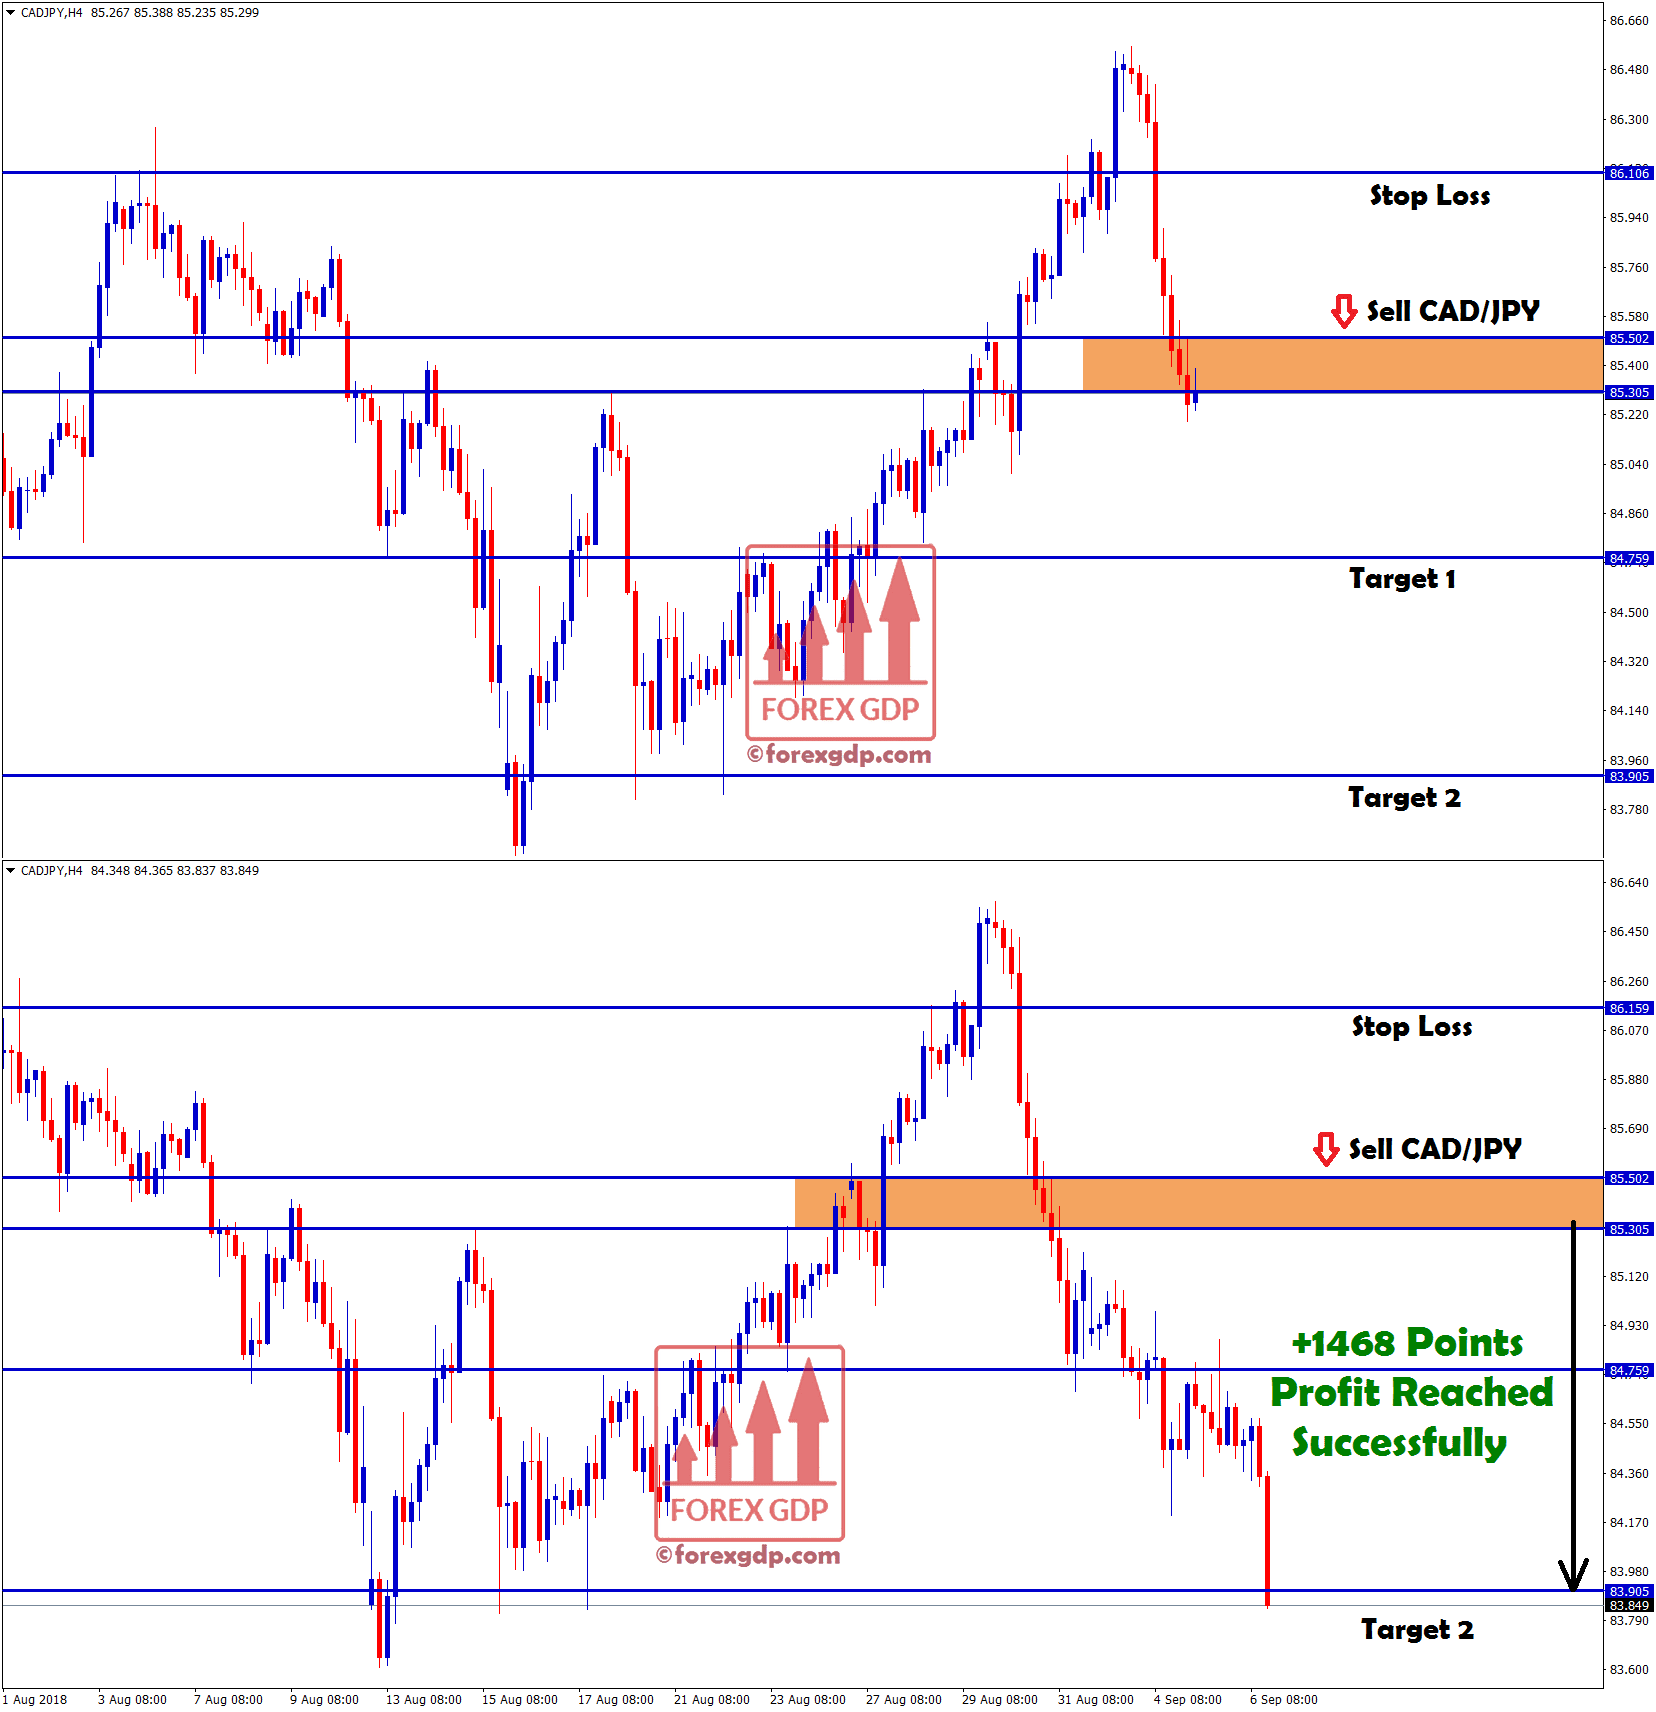 +1468 points profit made in cad jpy sell signal